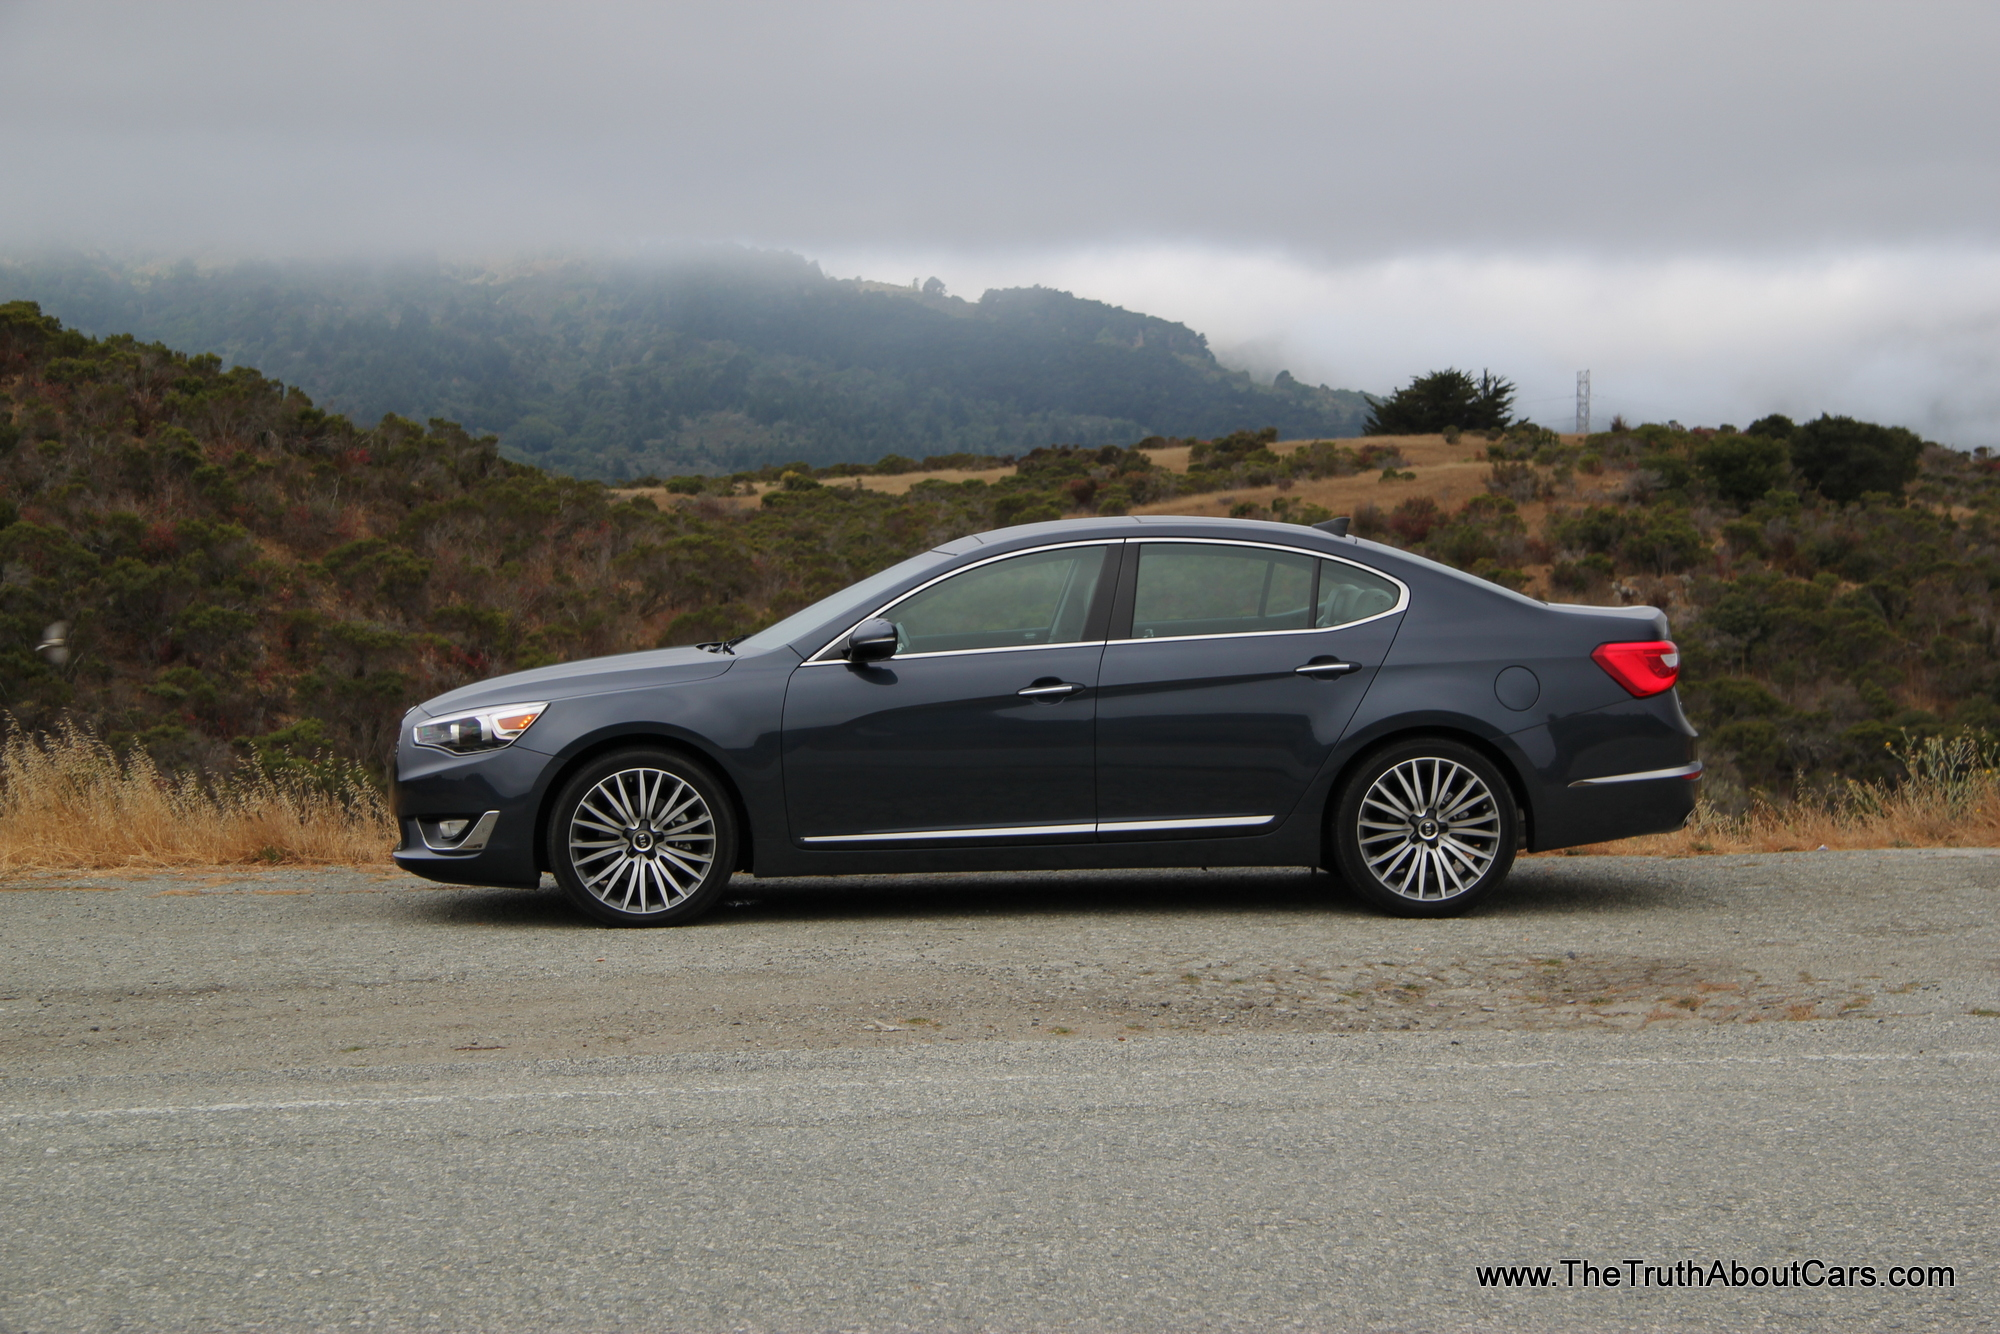 Review 2014 Kia Cadenza With Video The Truth About Cars